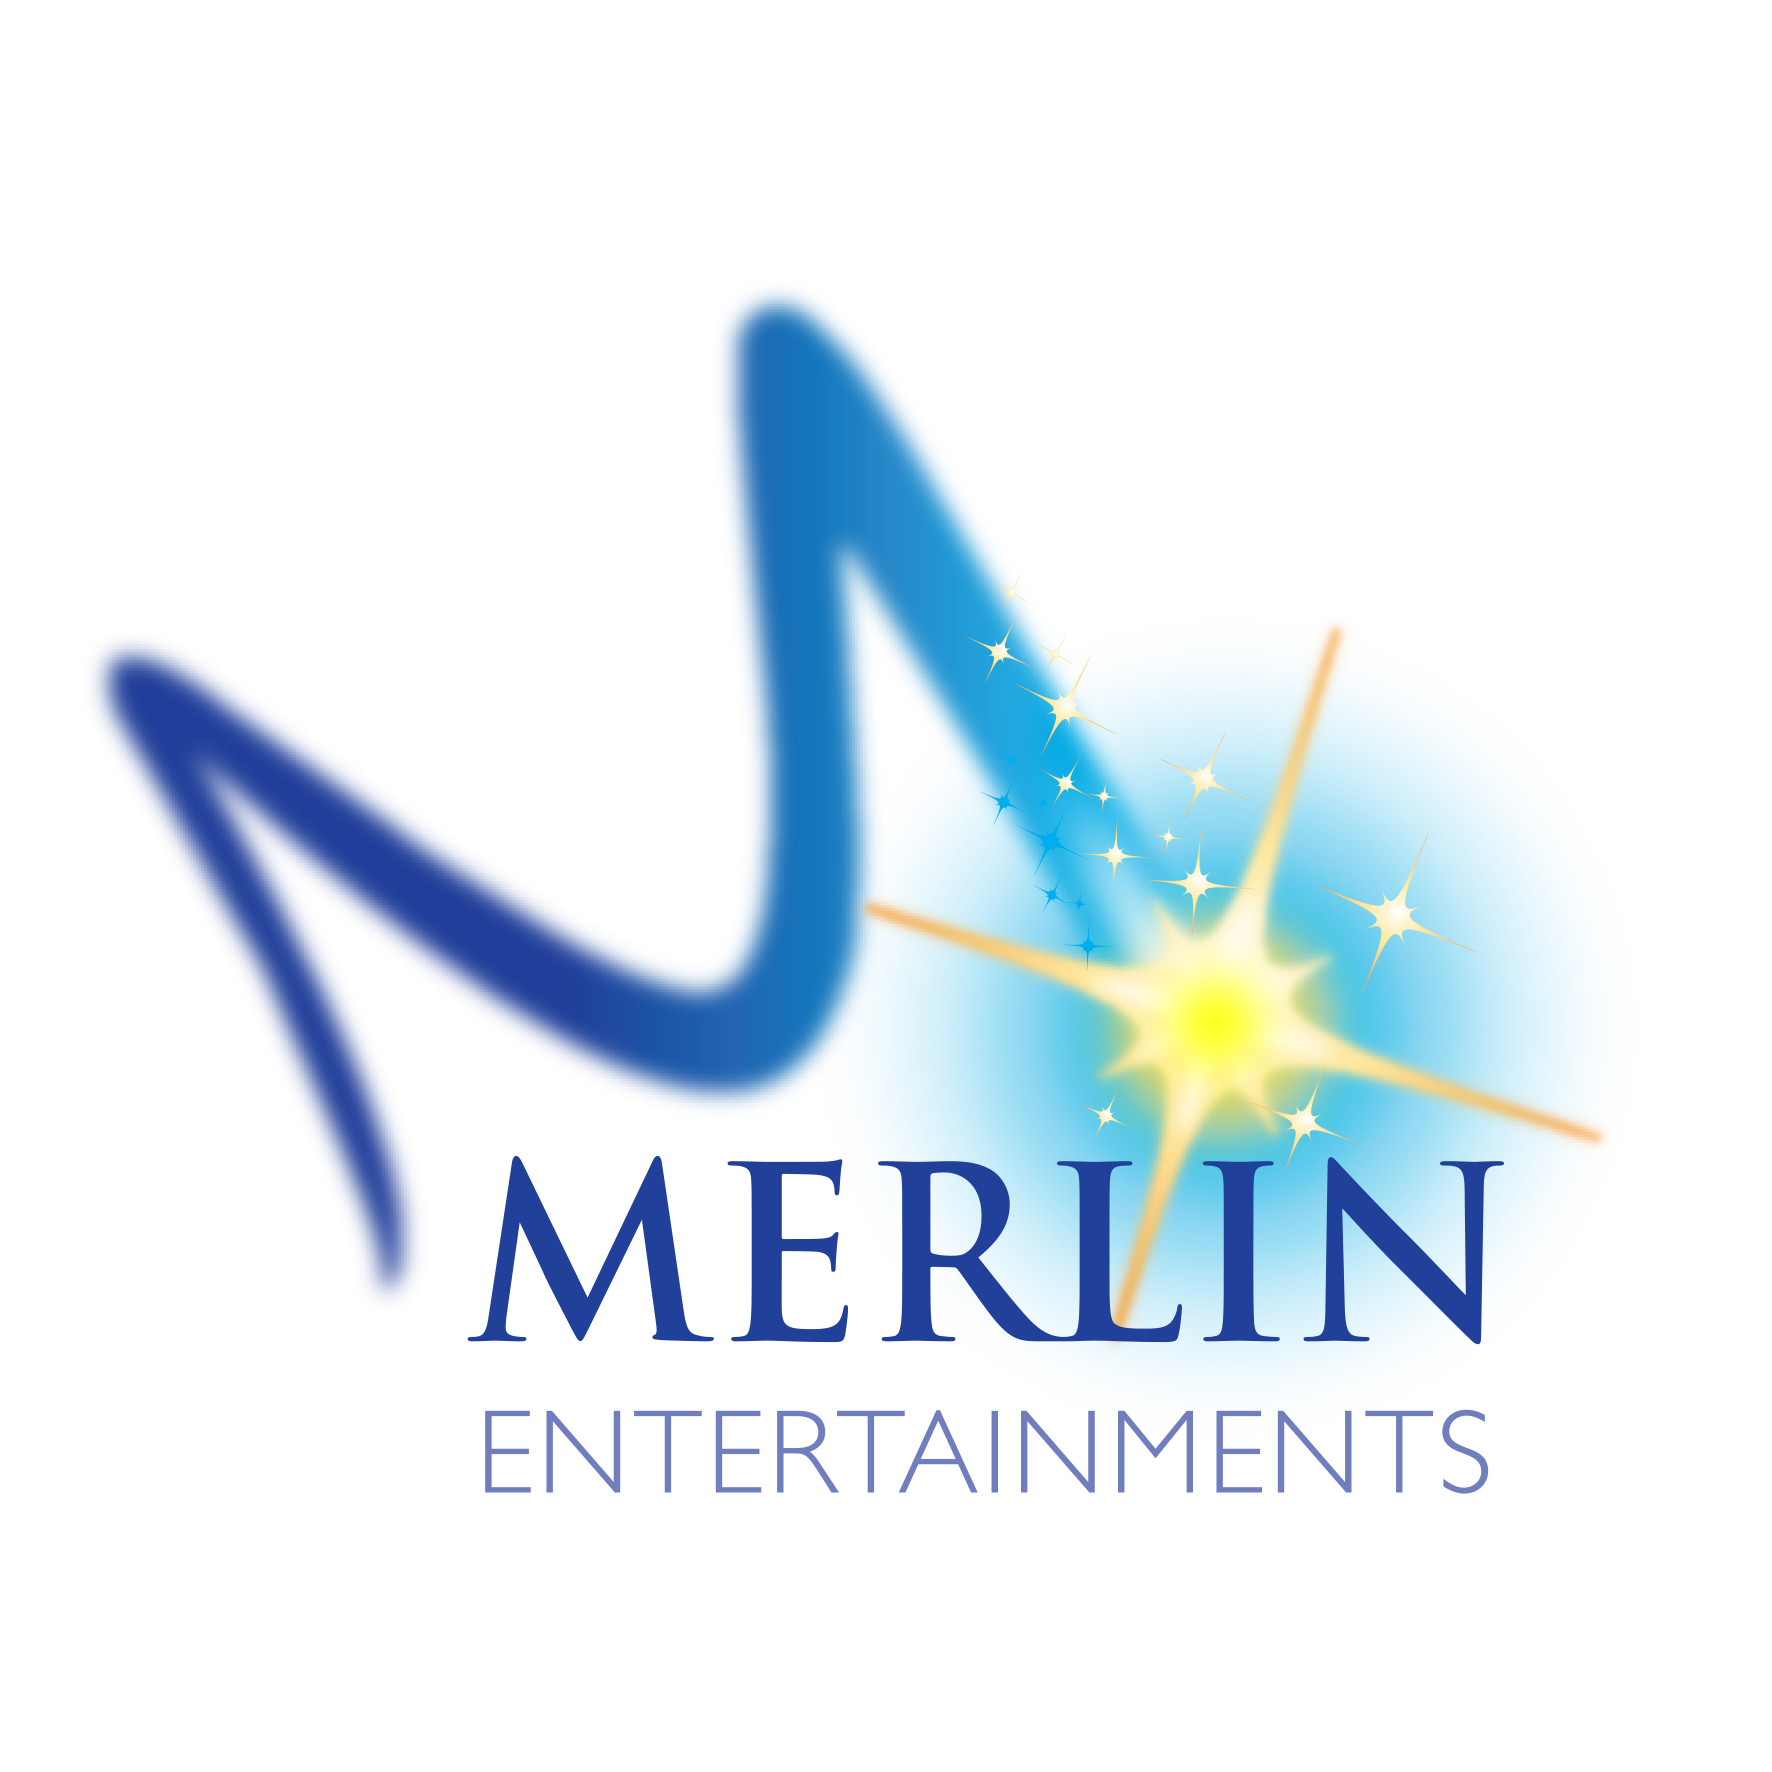 Merlin Entertainments - offering fantastic savings to the UK's top attractions